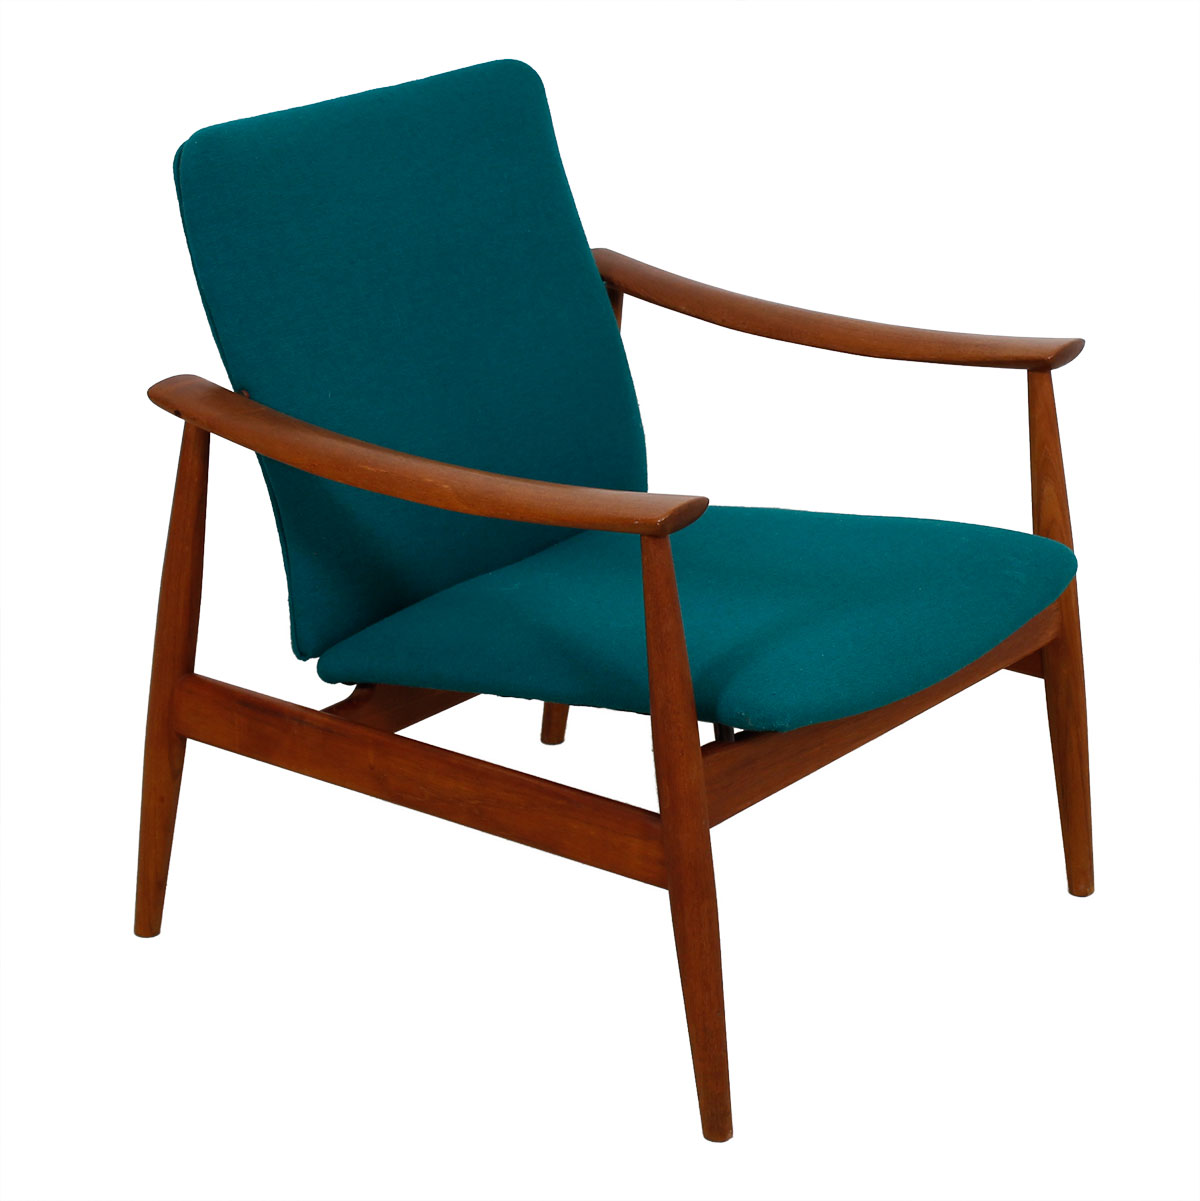 Pair of Finn Juhl Danish Modern Teak + Teal Easy Chairs